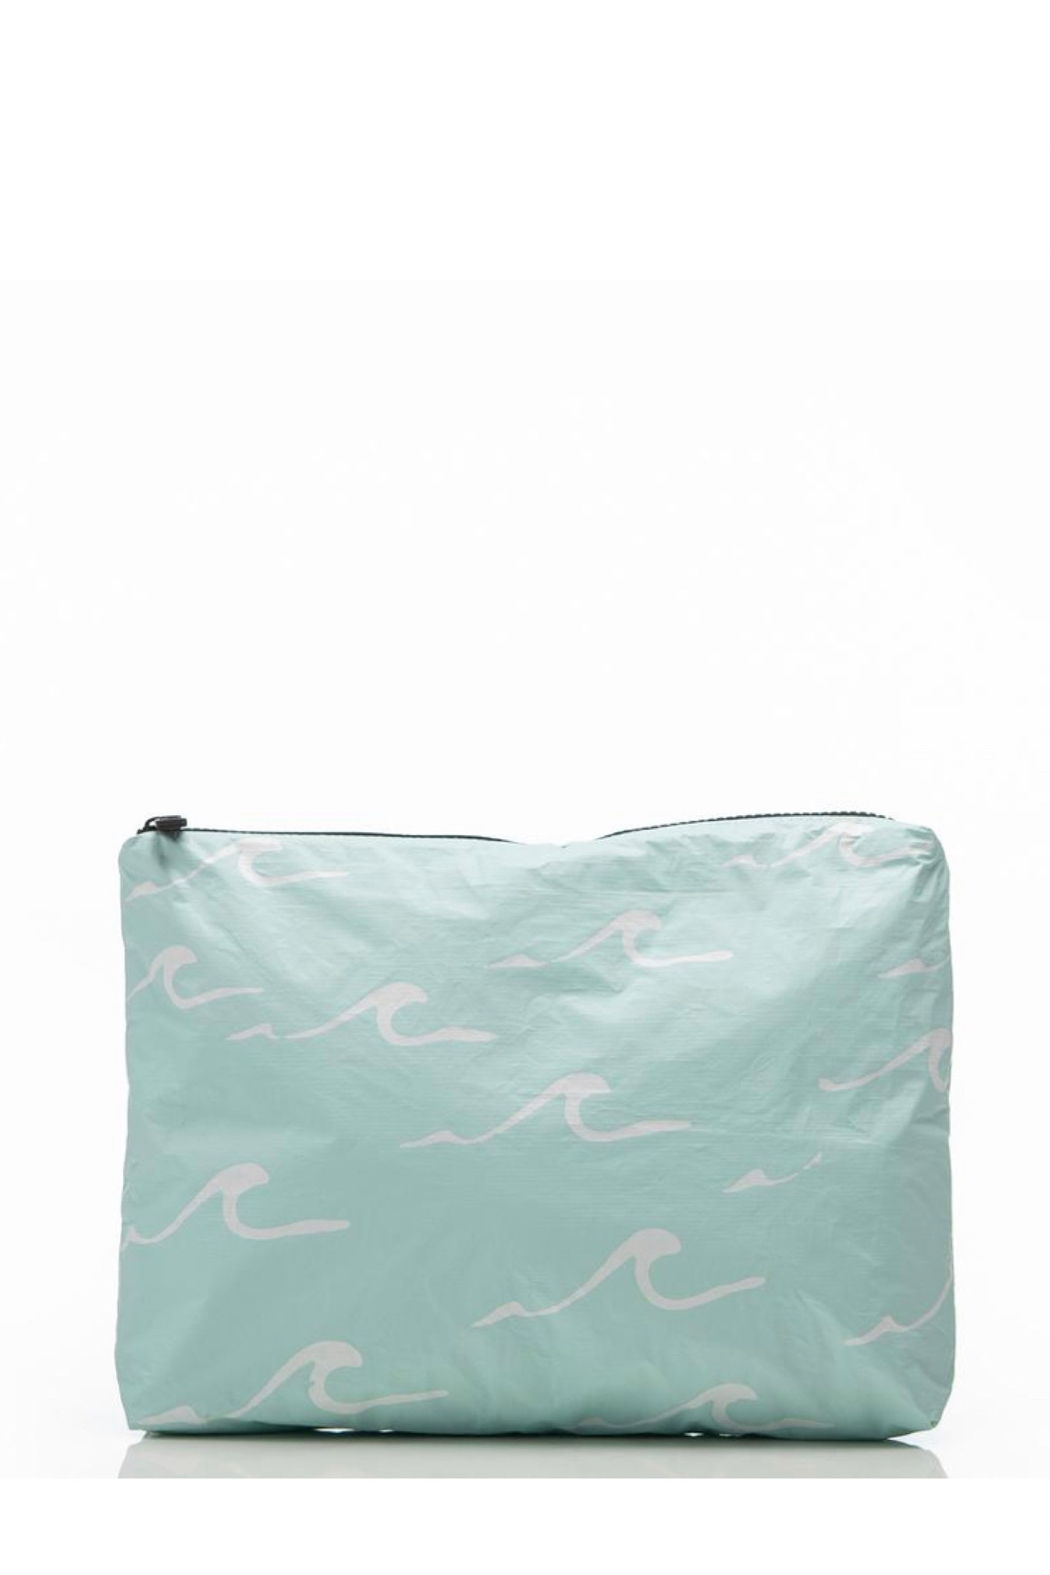 Aloha Collection Mid Seaside Pouch in LeMU Blue - Main Image